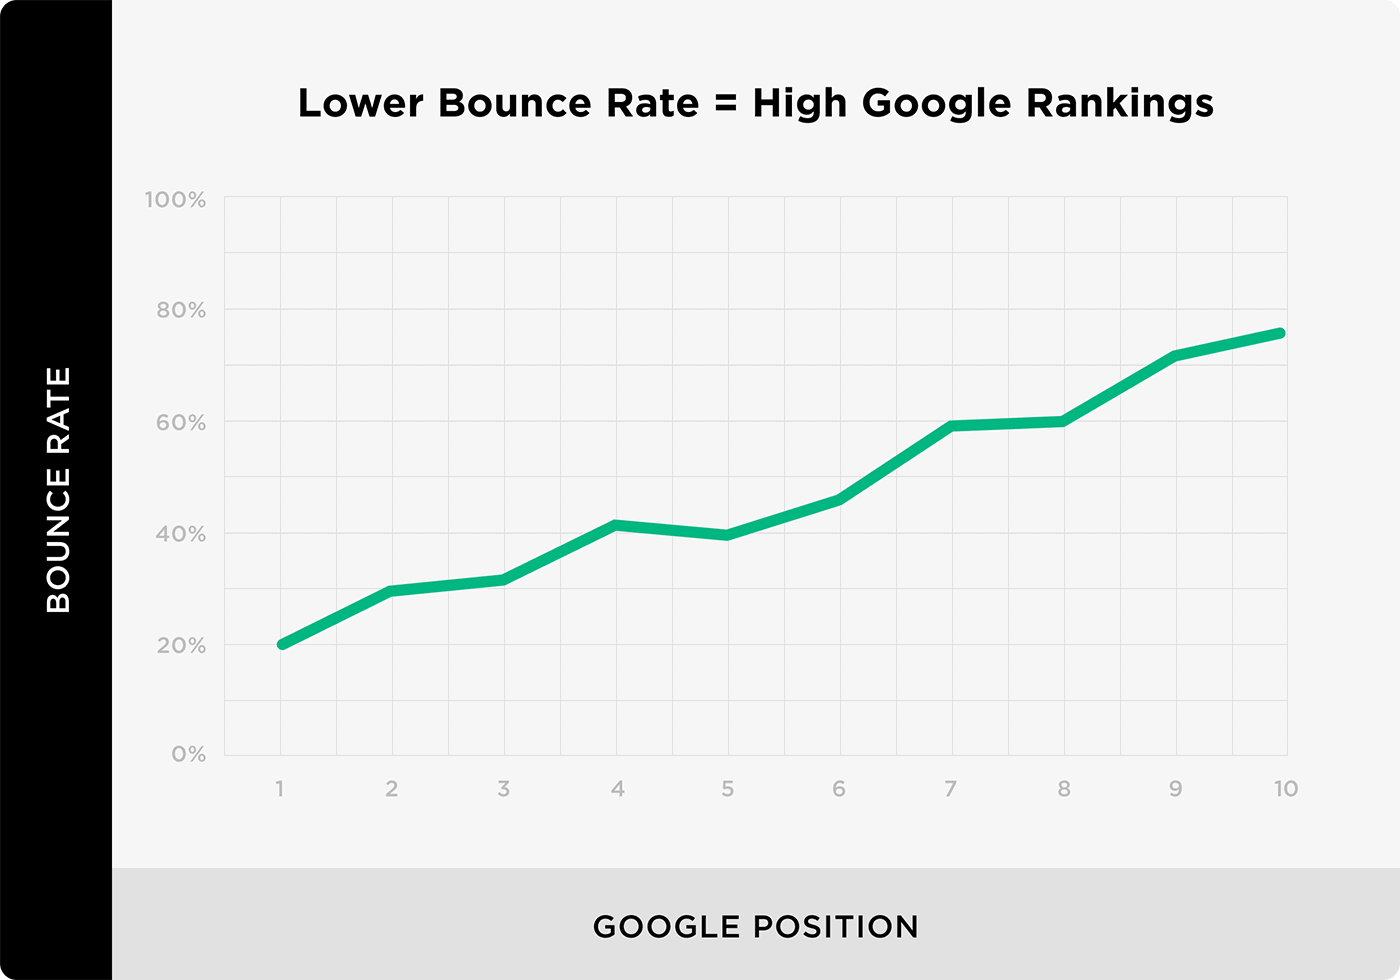 Lower bounce rate = High Google rankings